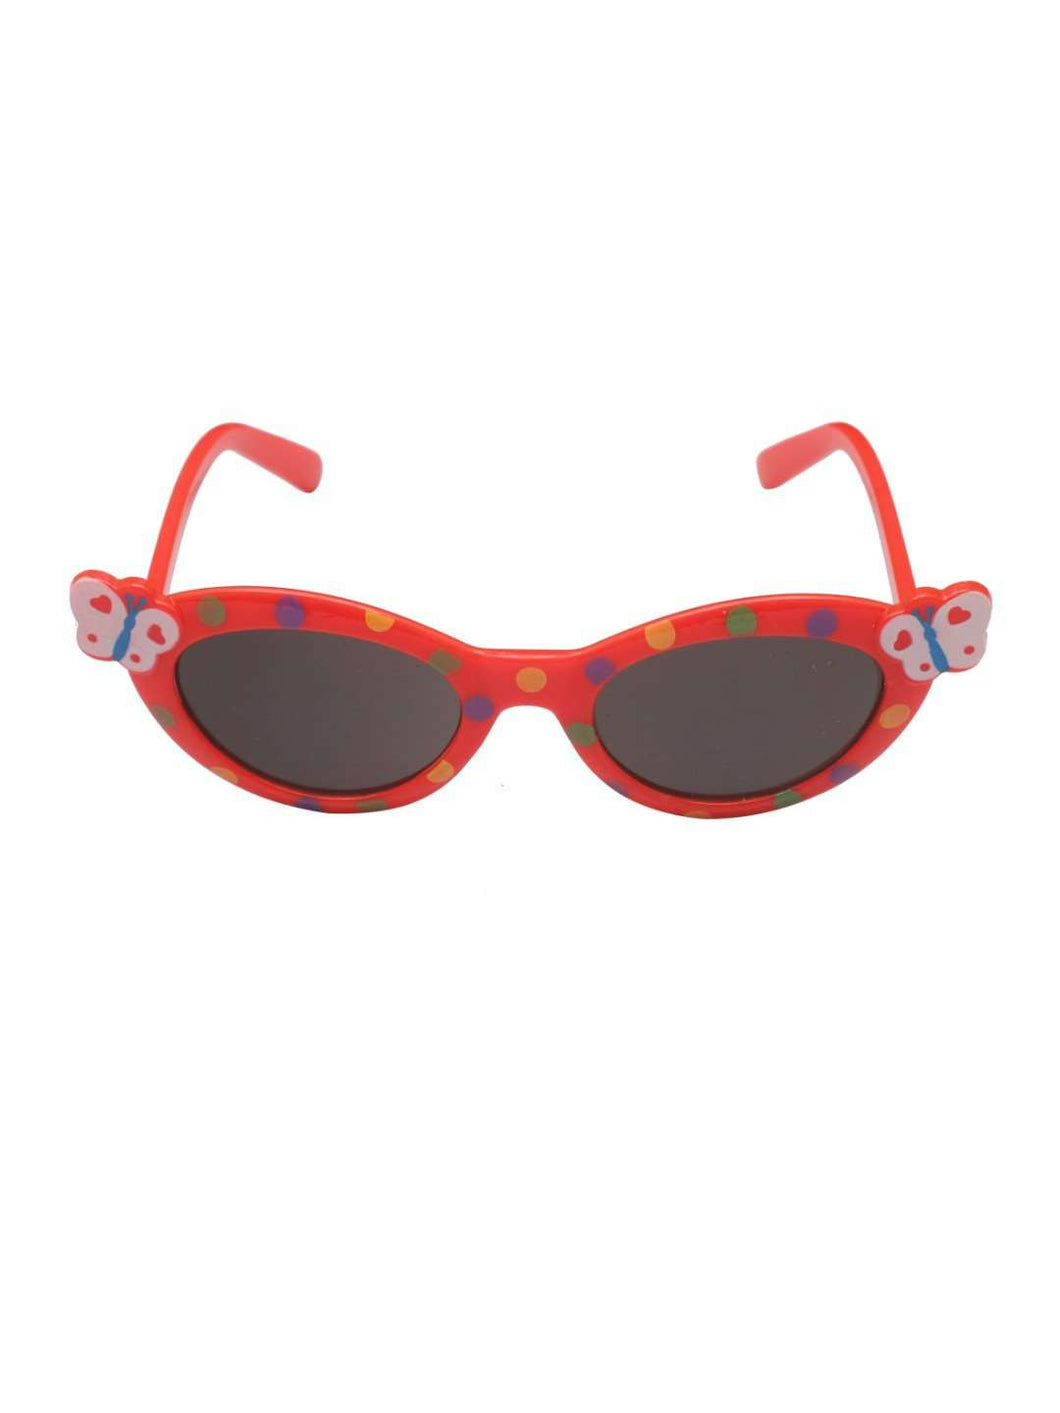 Stol'n Kids Red Butterfly Cat Eye Sunglasses - SWHF